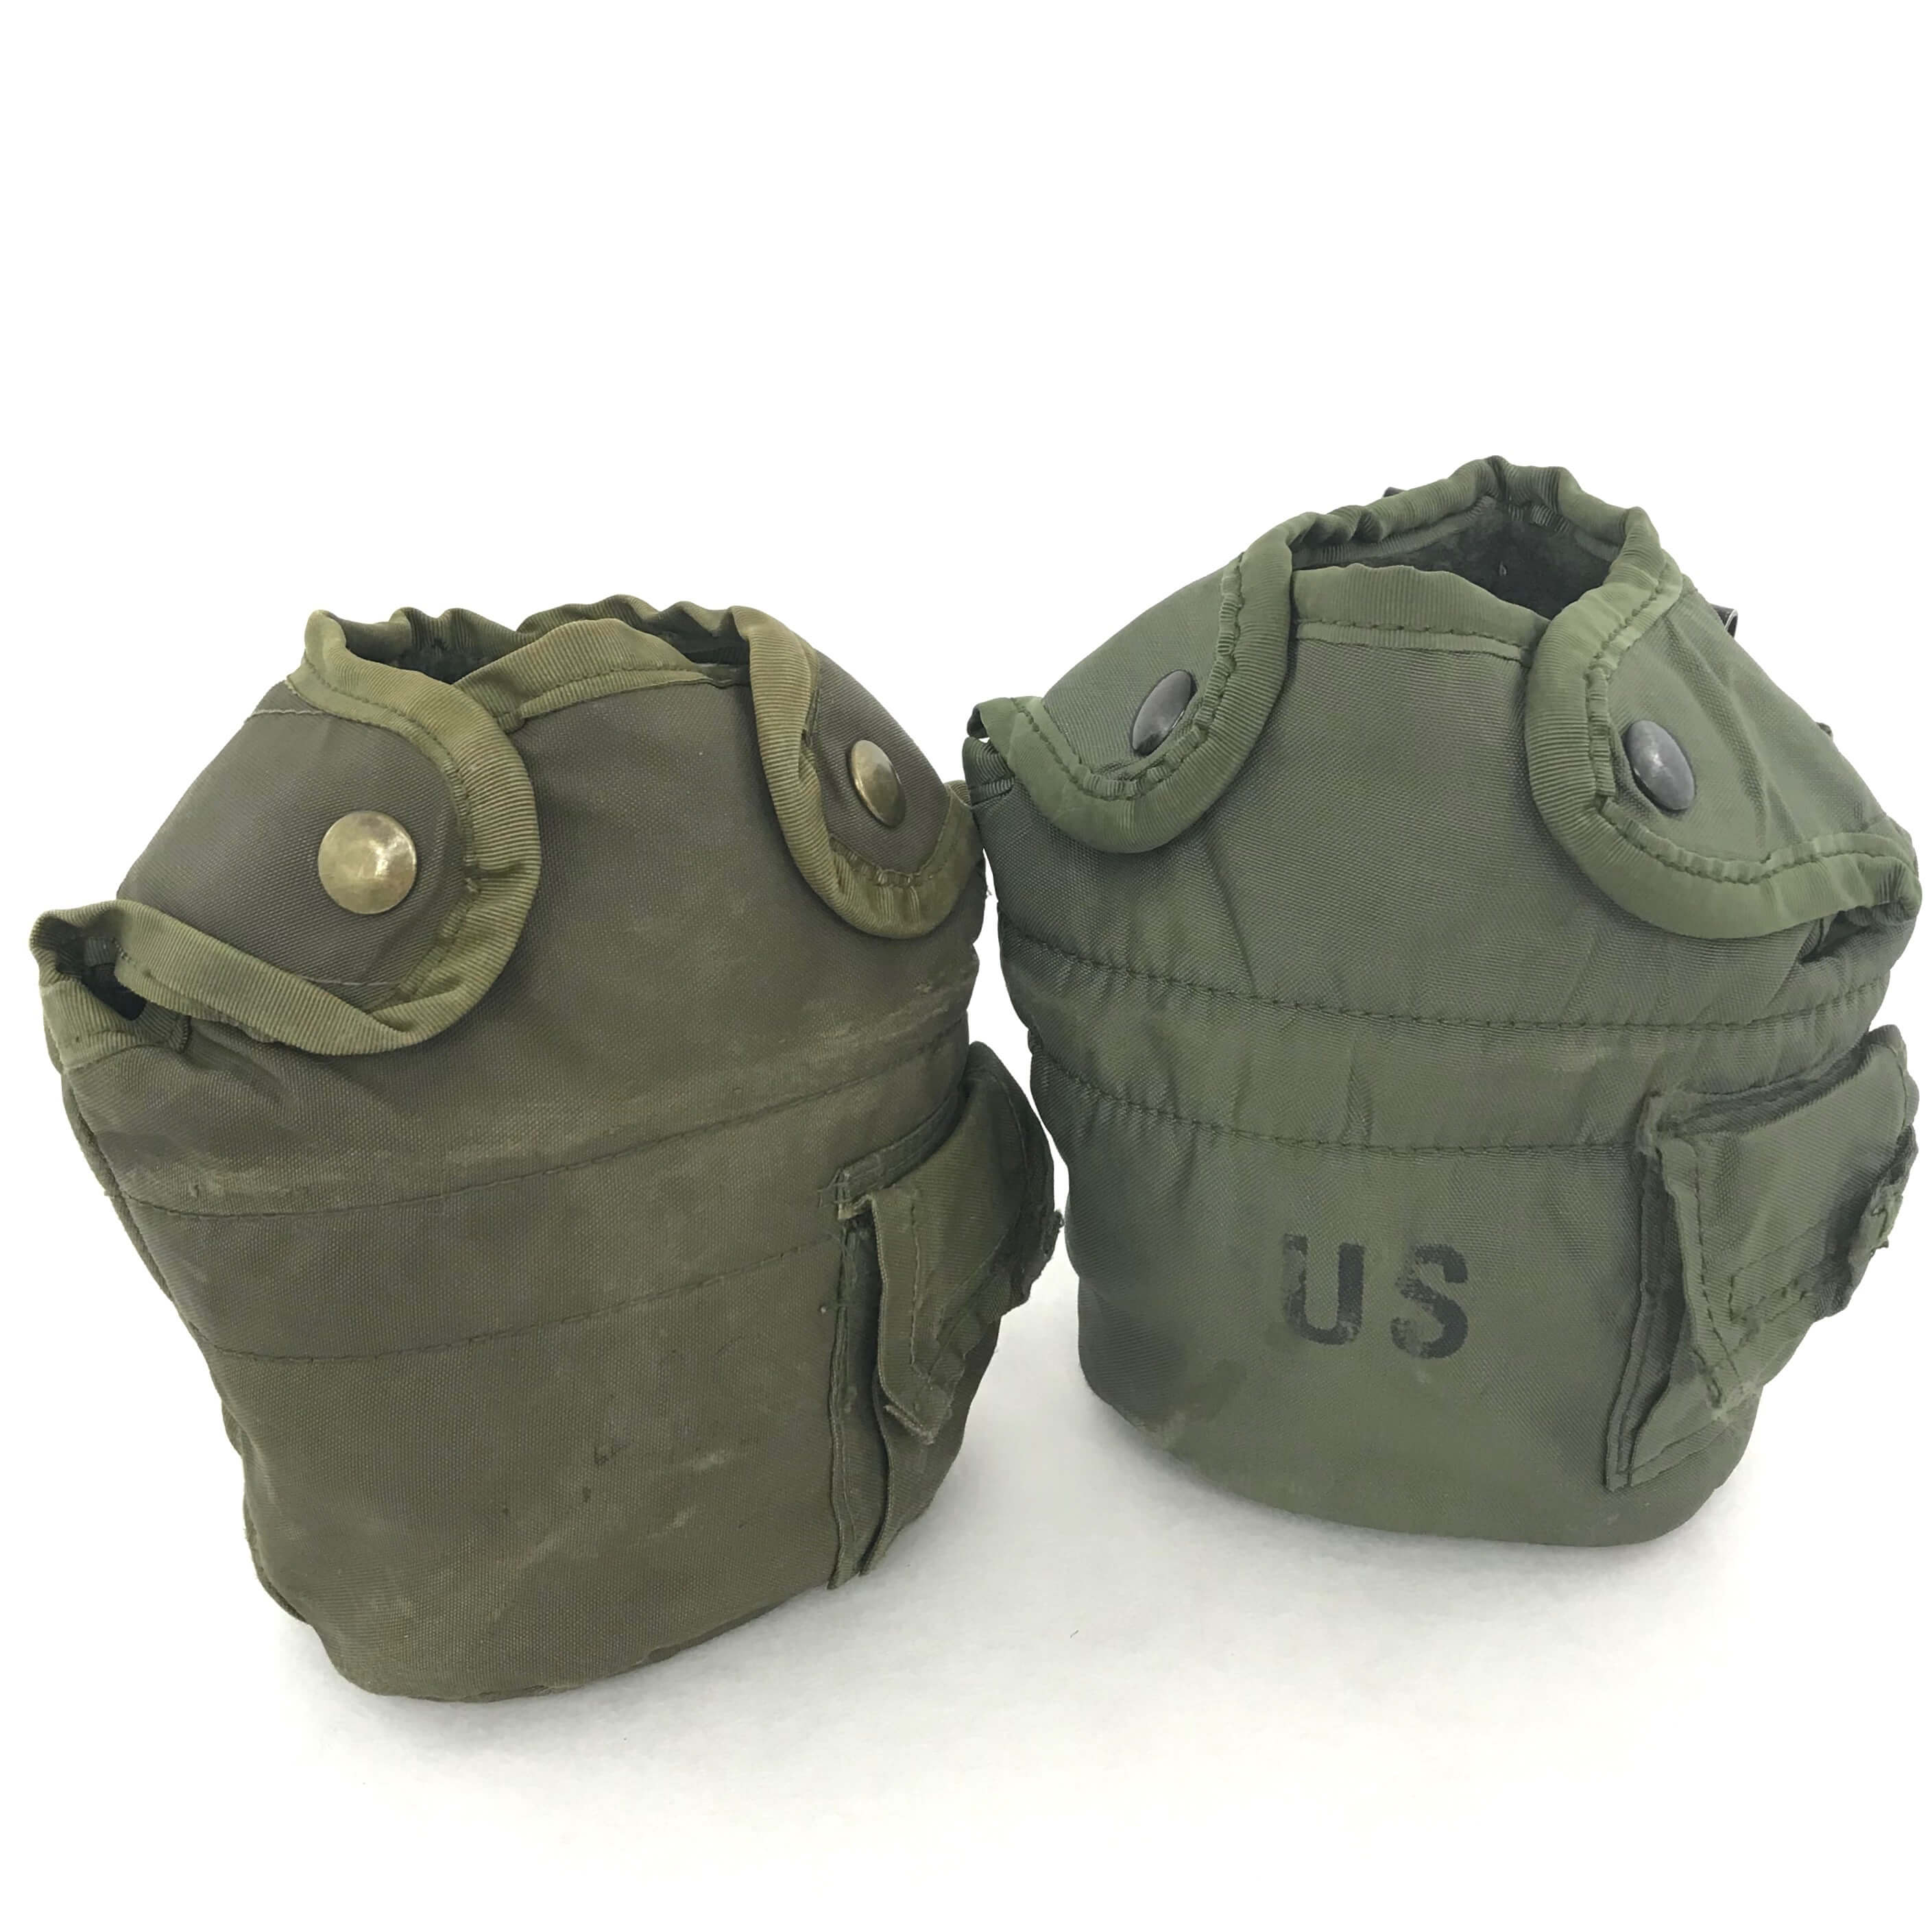 US Military ALICE Canteen Cover